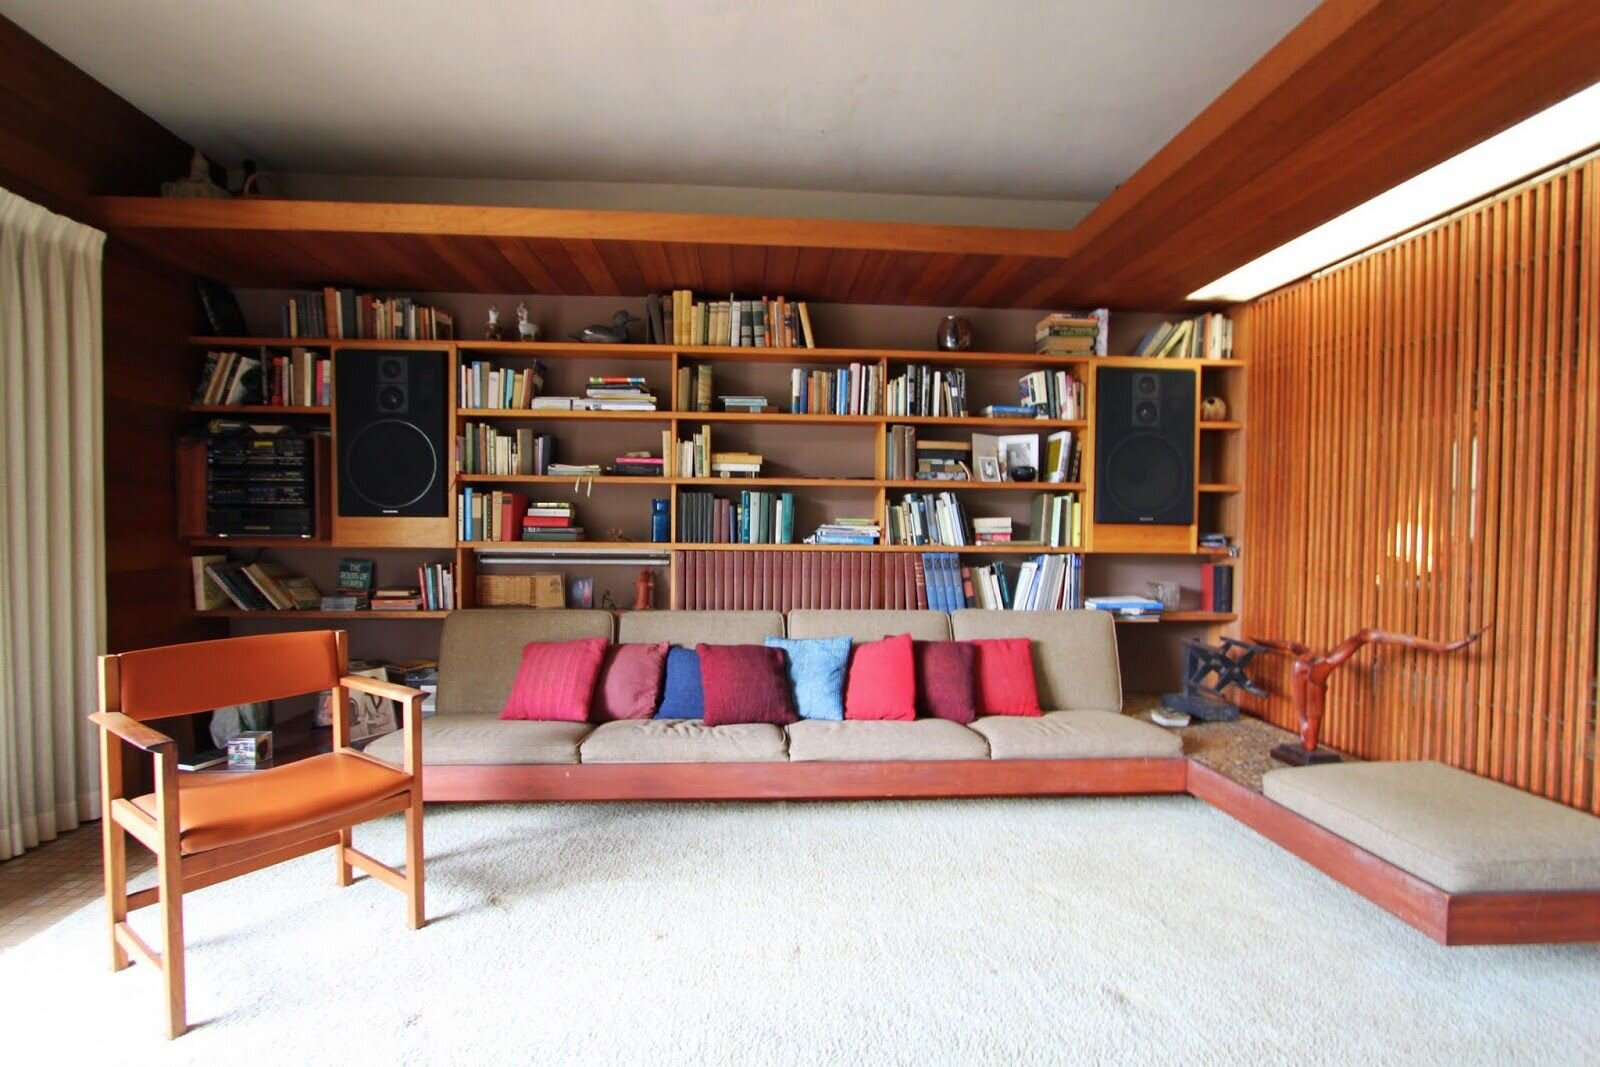 Bookcase design with built-in sectional  sofa .